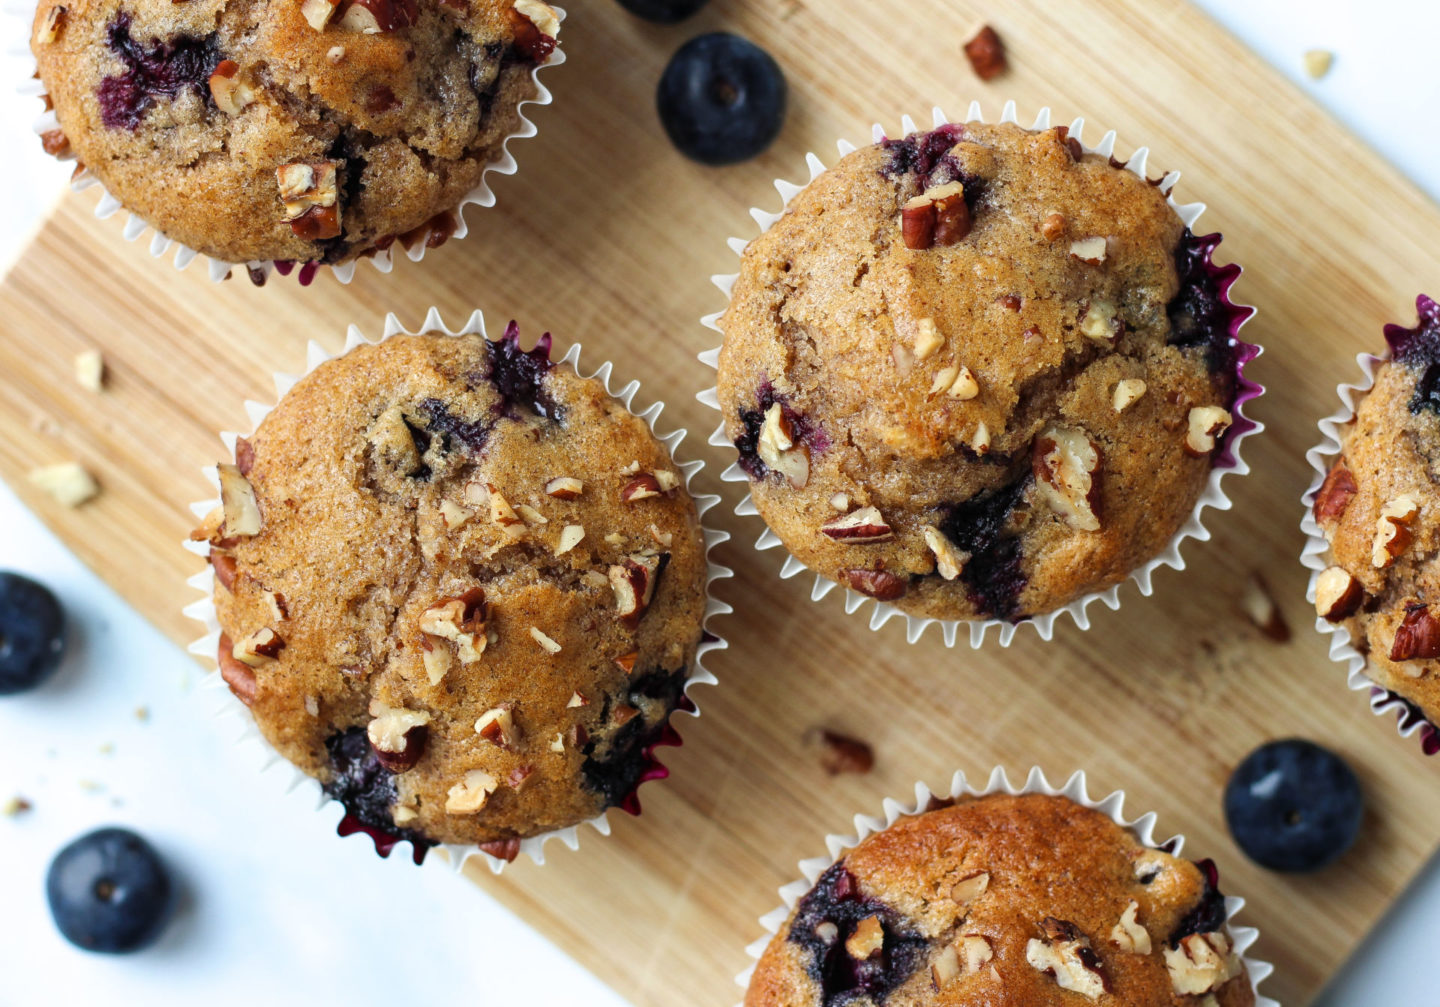 View from above of blueberry nut muffins